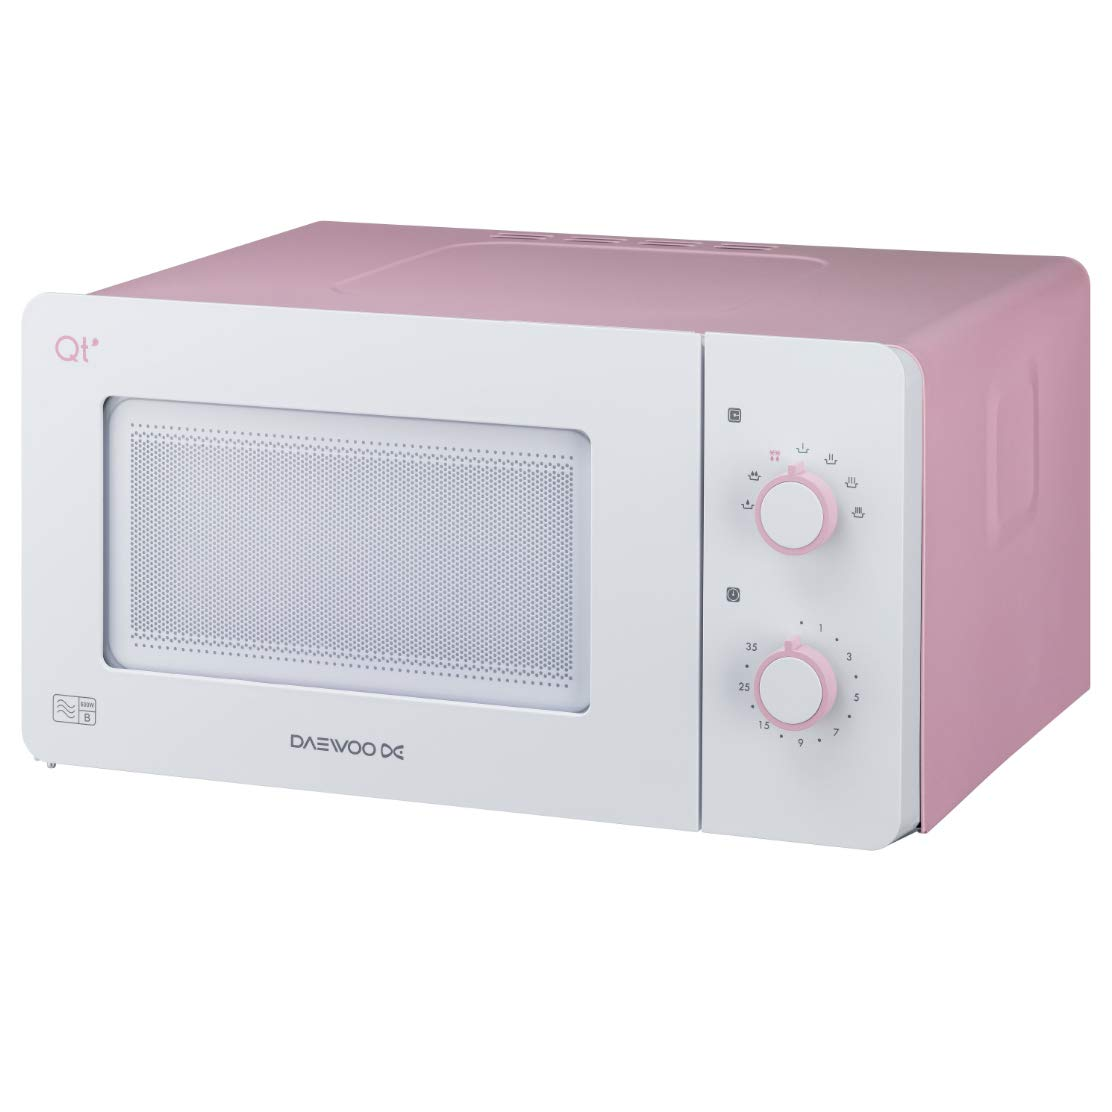 Daewoo QT3R Compact Manual Control Microwave Oven, 600 W, 14 Litres, Pink/White